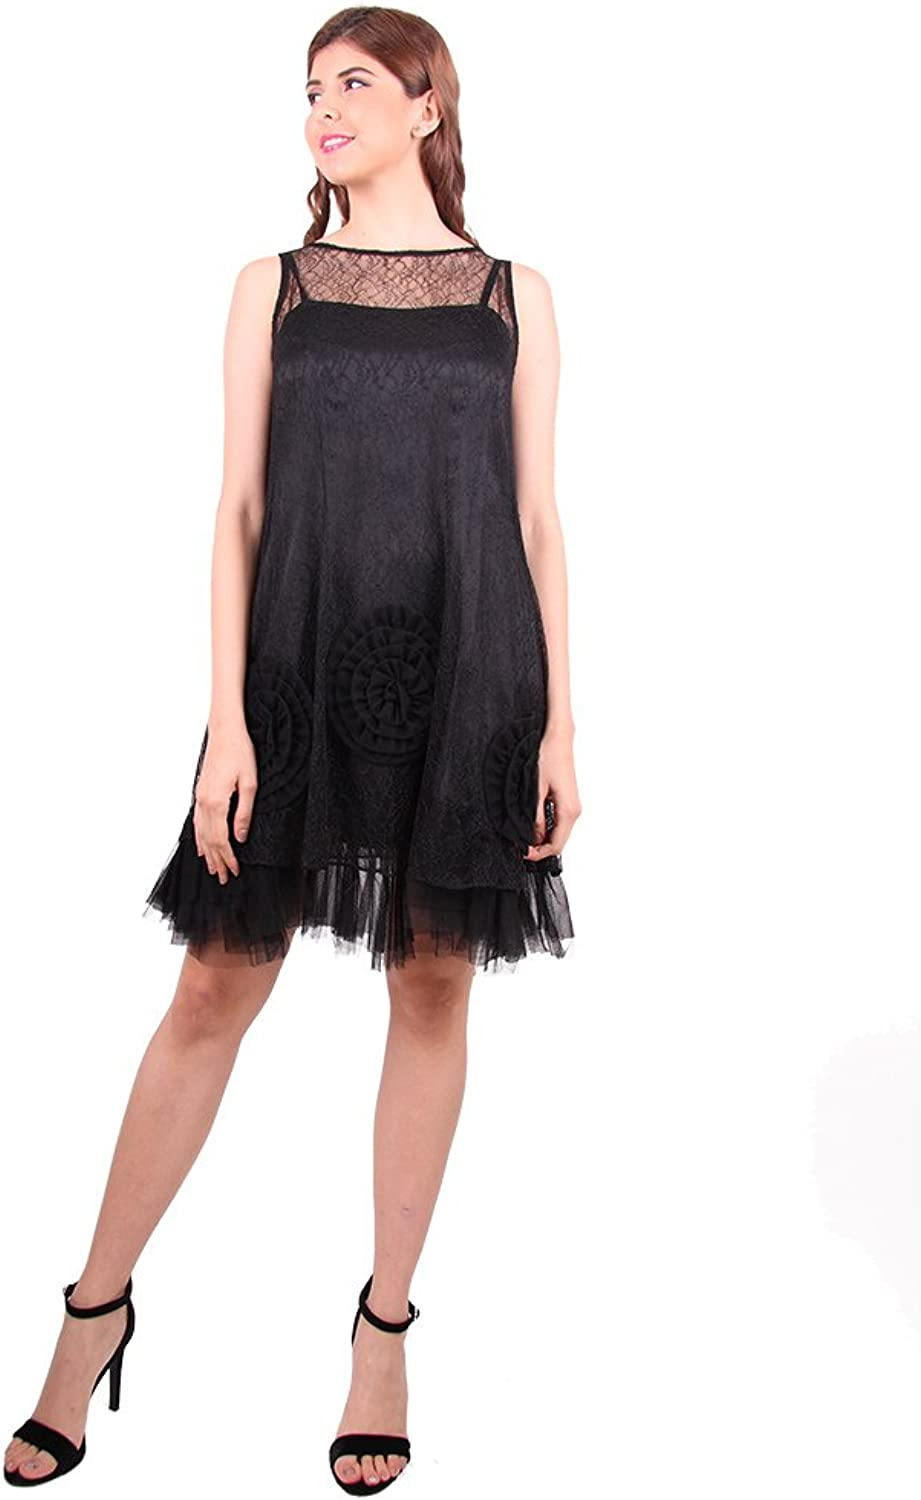 DEMODA FASHION Women' Lace Pleated Mesh Dress for Prom and Wedding Party.